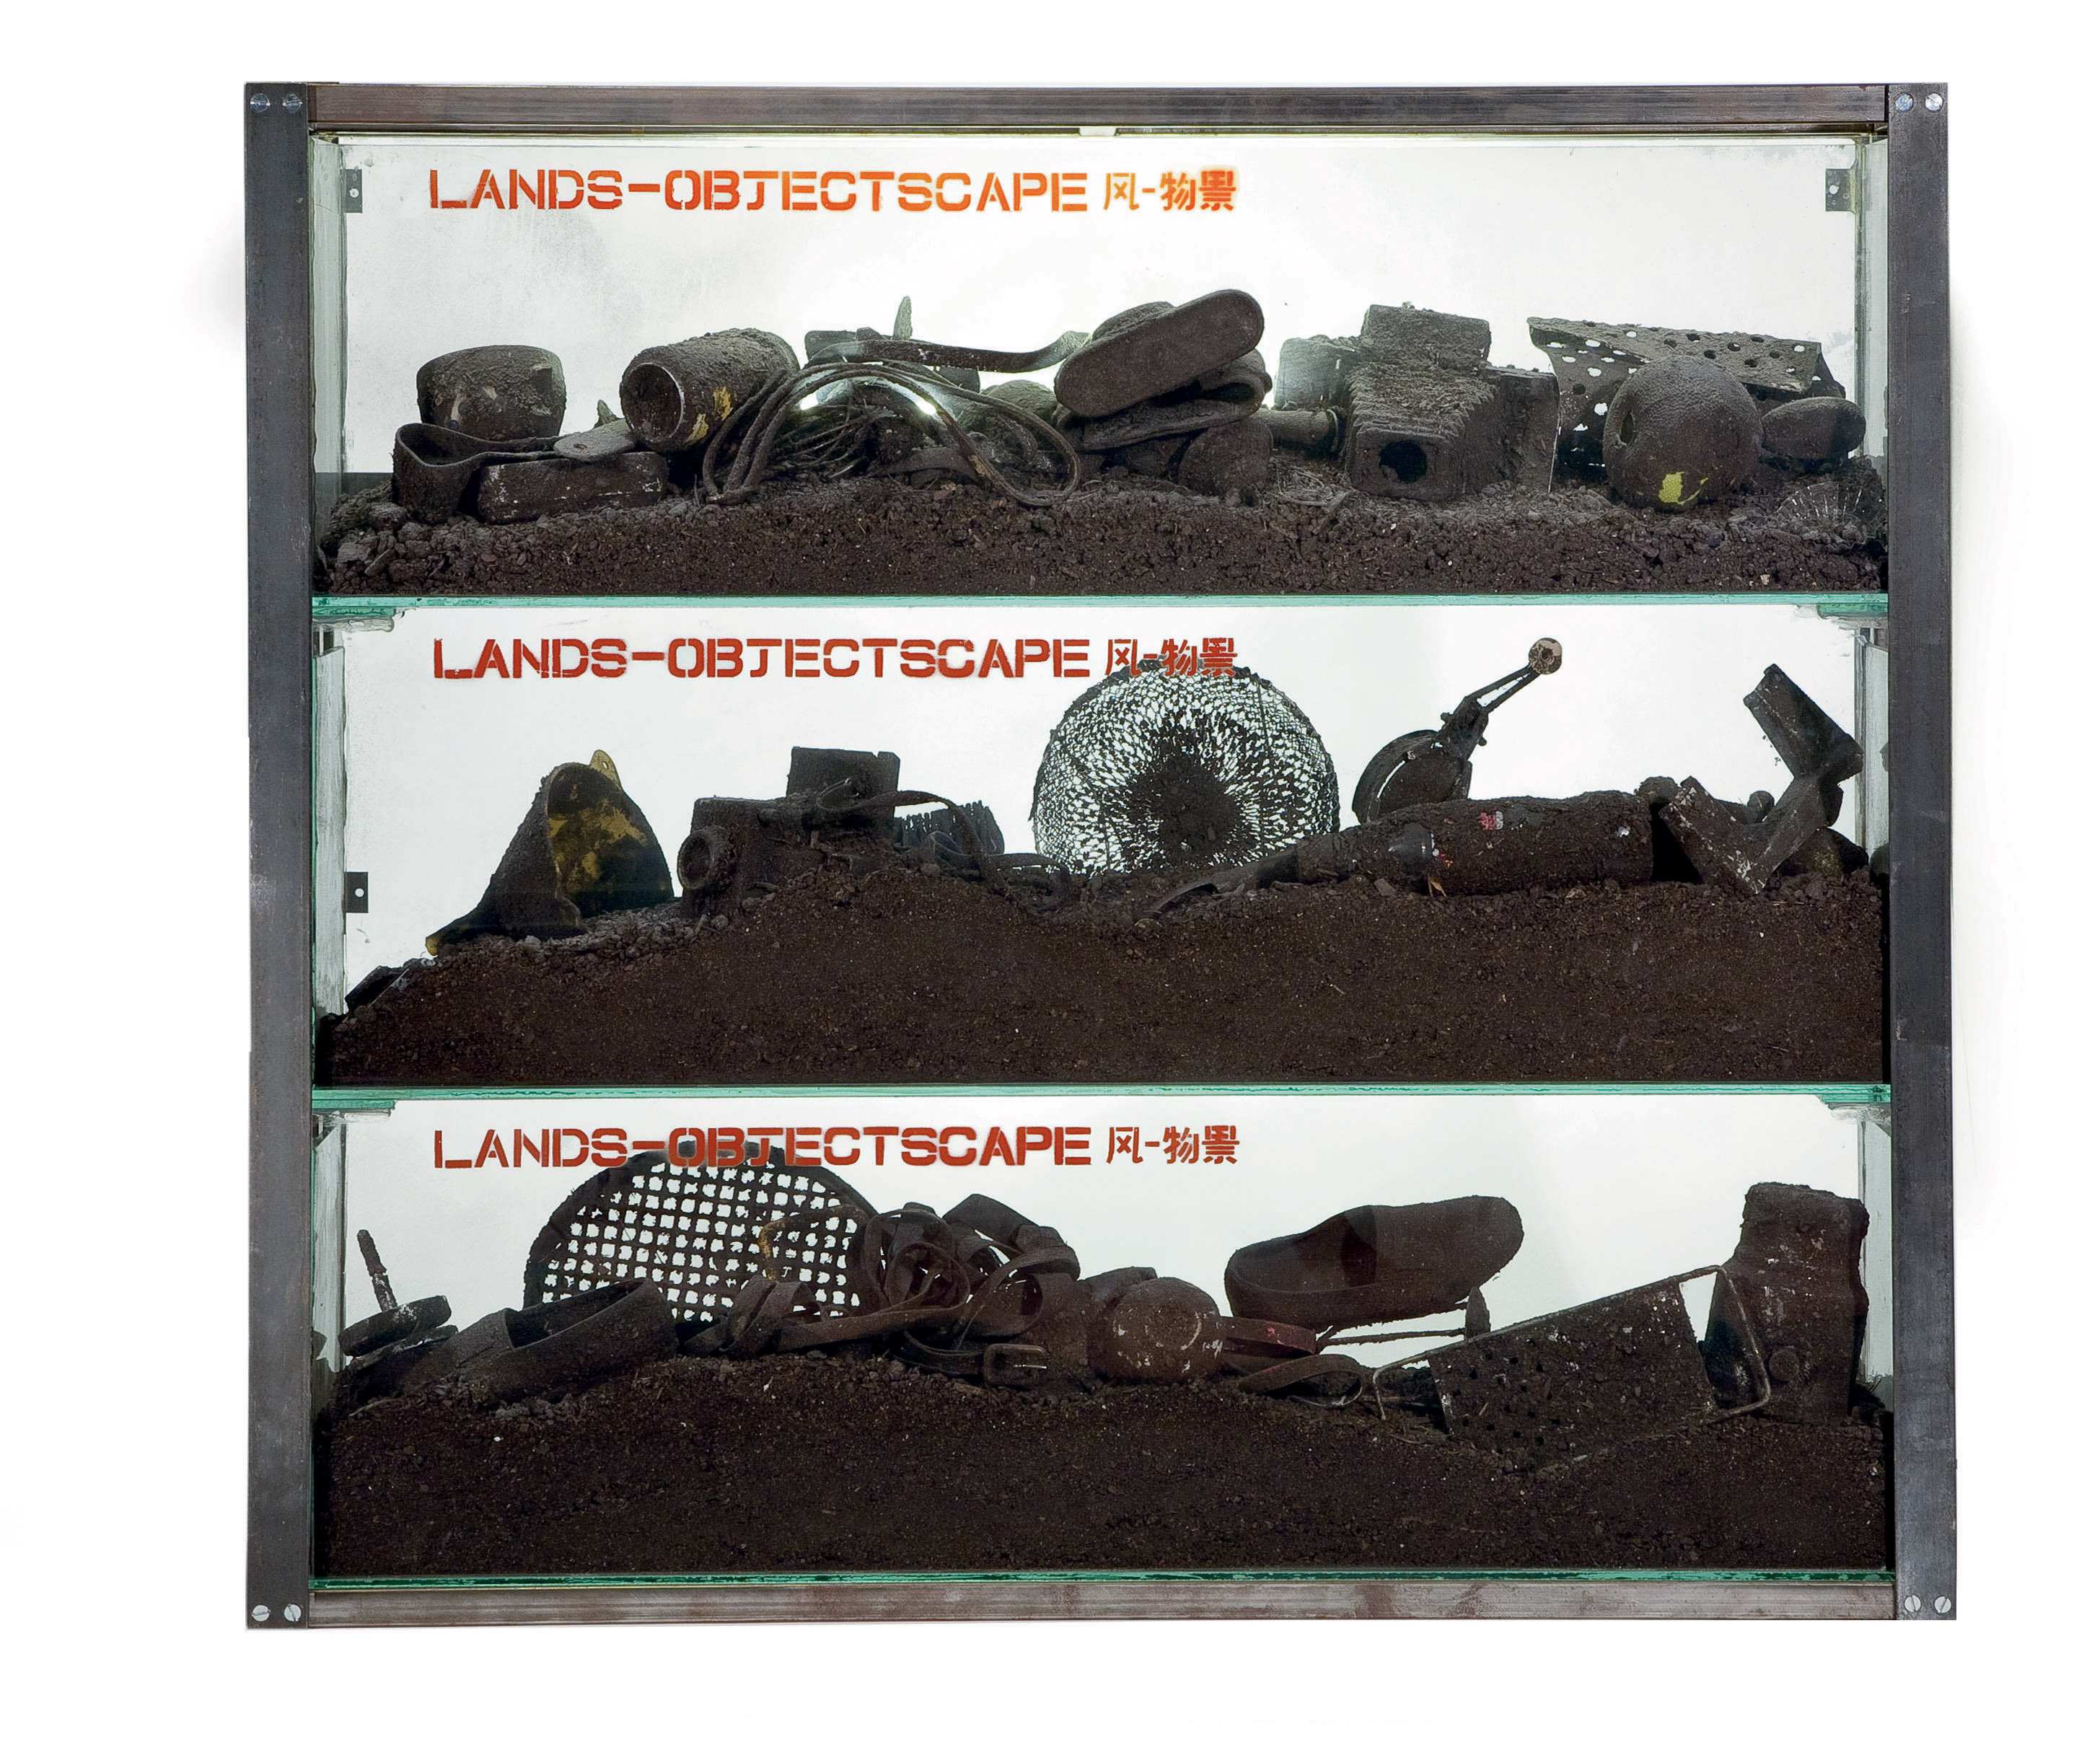 Lands-objects-cape